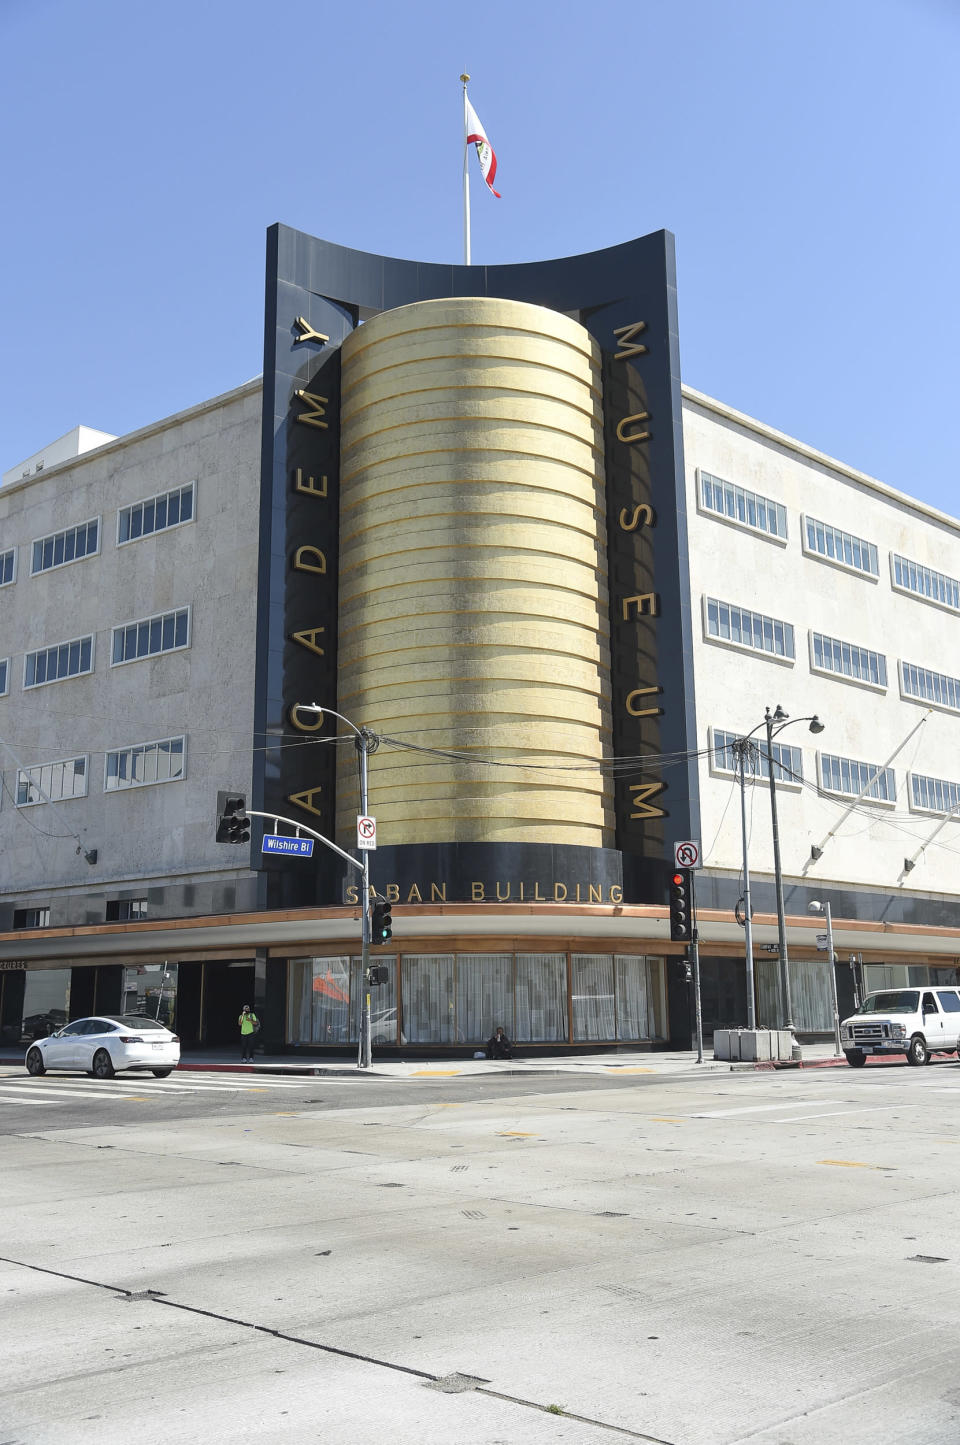 Academy Museum Of Motion Pictures on Tuesday, Sept. 21, 2021, in Los Angeles. (Photo by Richard Shotwell/Invision/AP)